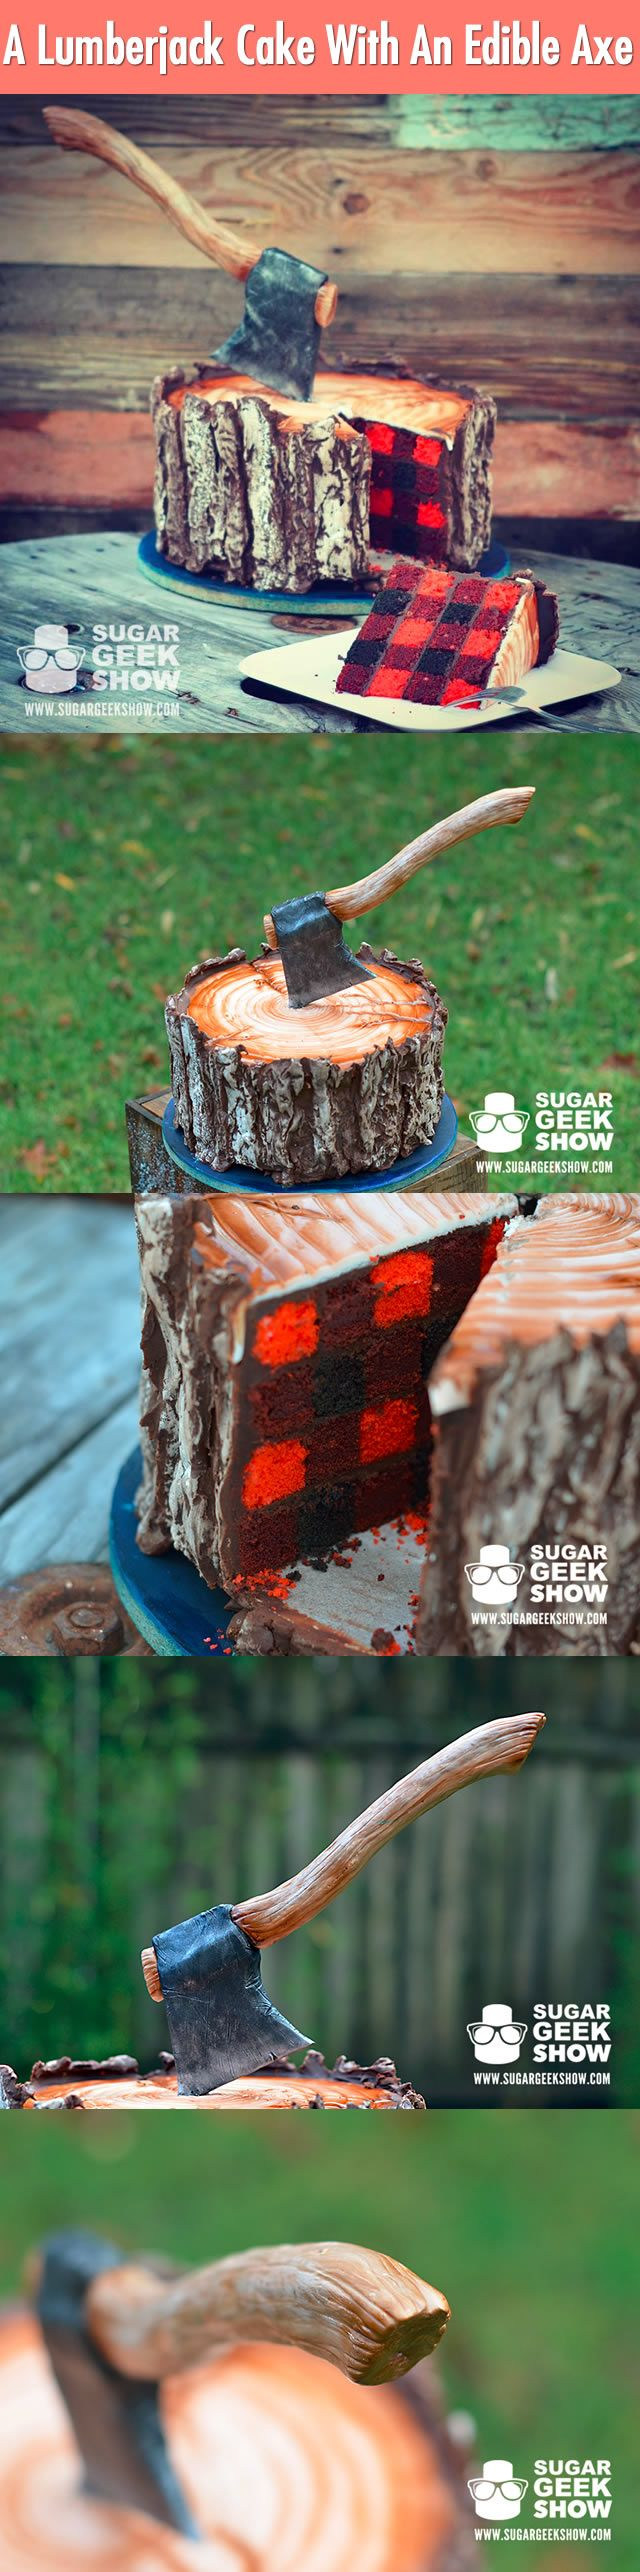 A crazy cake lover makes an unbelievable lumberjack cake, after he upload the picture to the internet within 48 hours, it has been shared over a million times on social media. YES, EVEN THE AXE IS EDIBLE! Resource: sugargeekshow.com